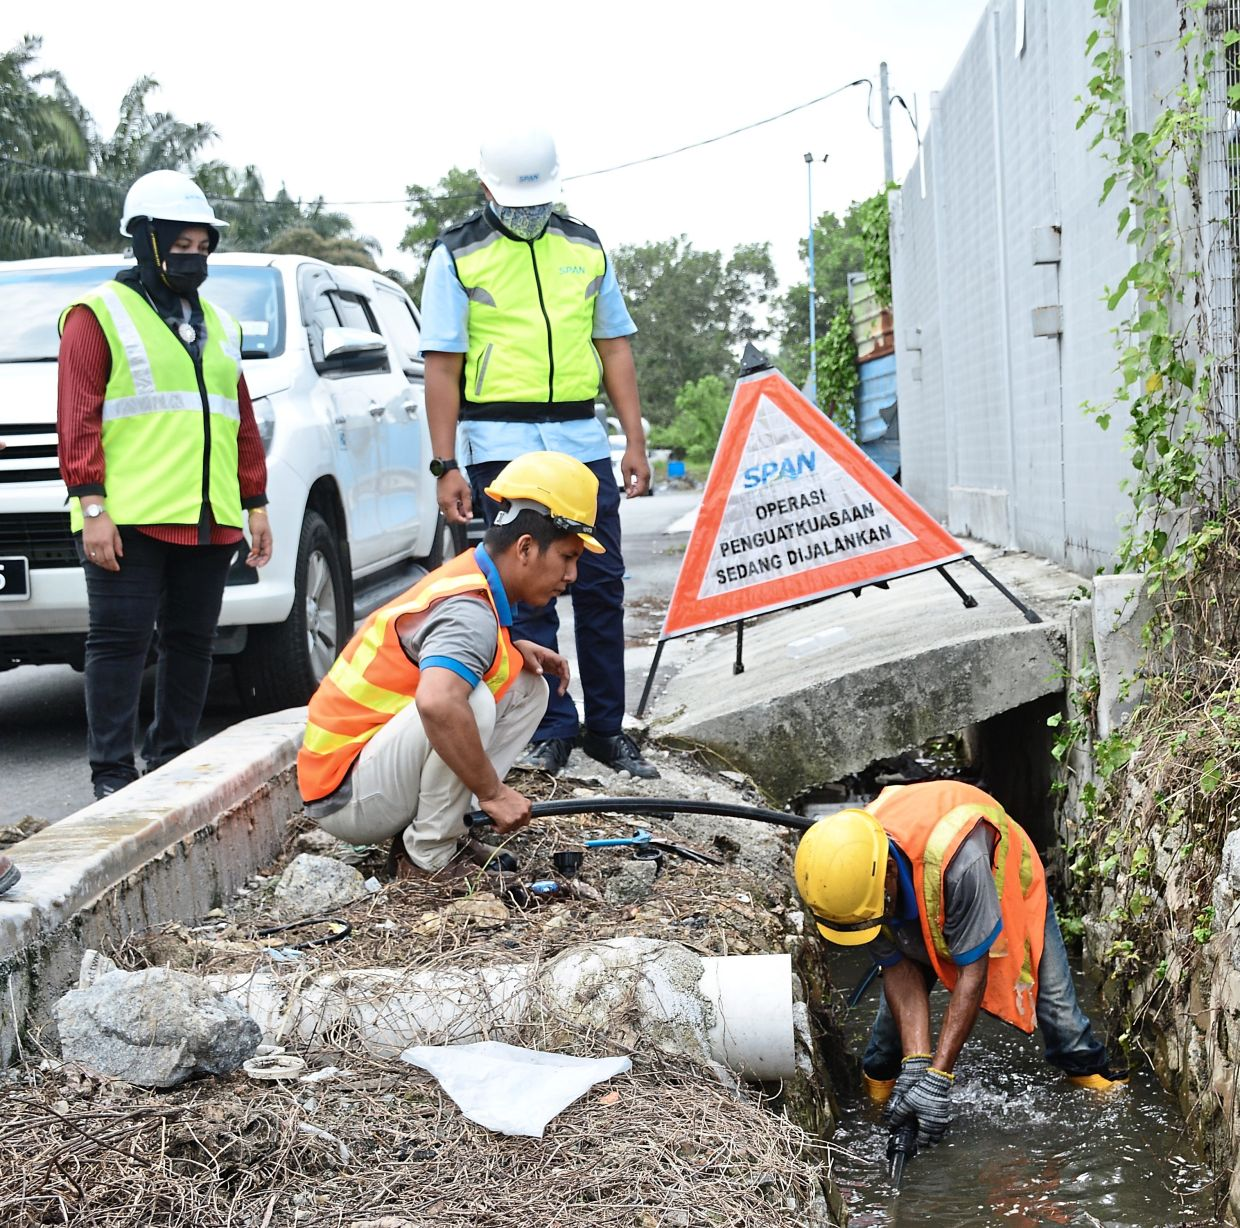 Finding the leak:  SPAN workers disconnecting an illegal pipe during an operation at a scrapyard  in Teluk Panglima Garang, Banting. — LOW BOON TAT/The Star